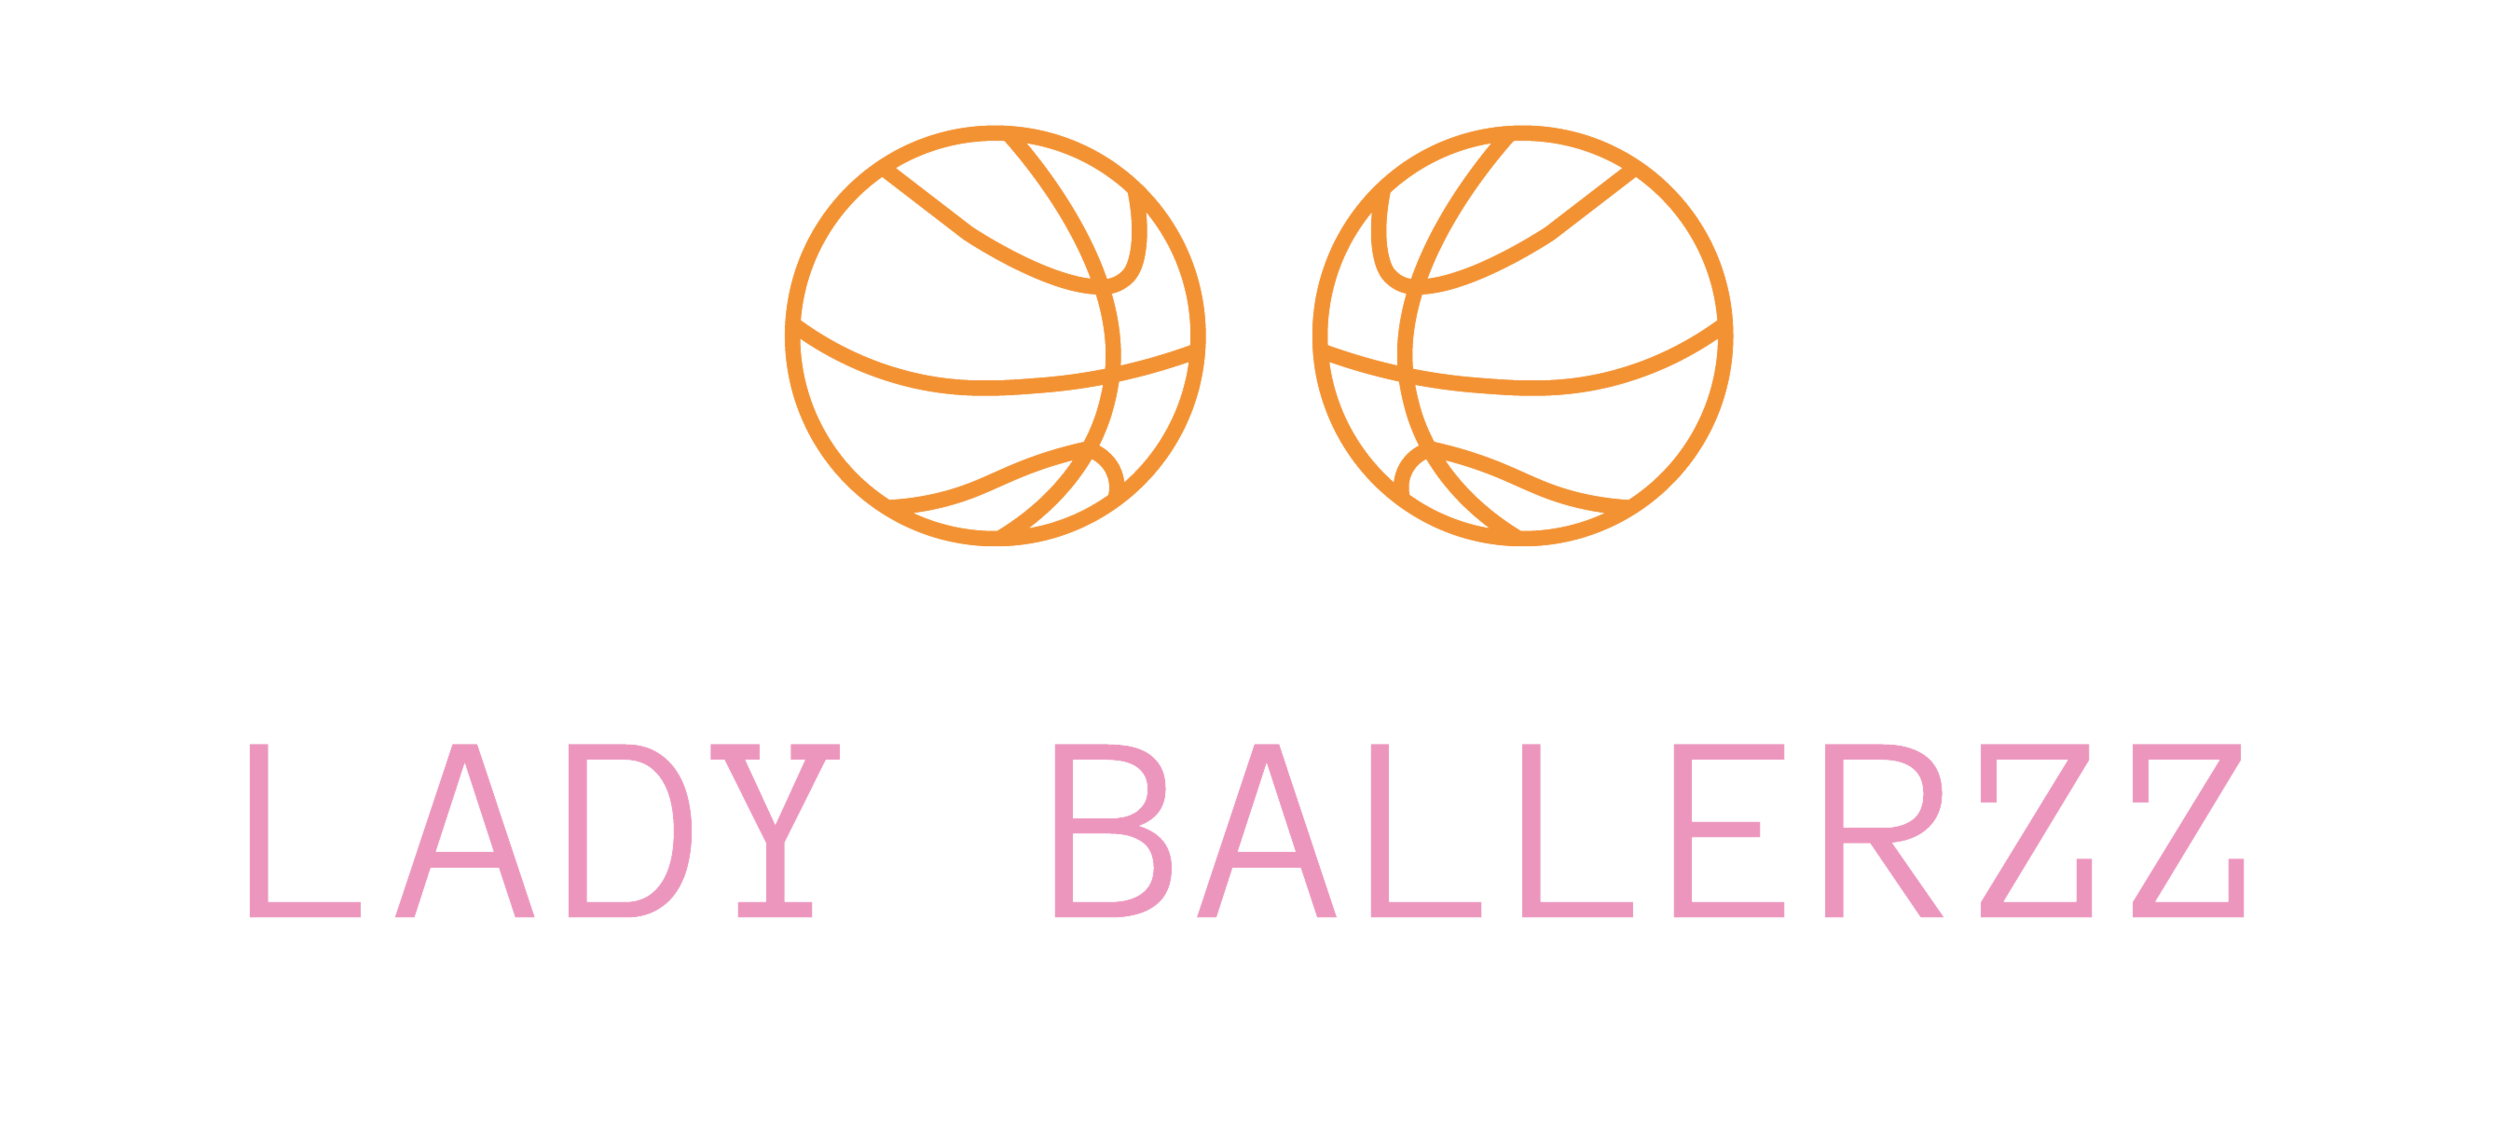 Lady_Ballerzz_Horizontal_white.png